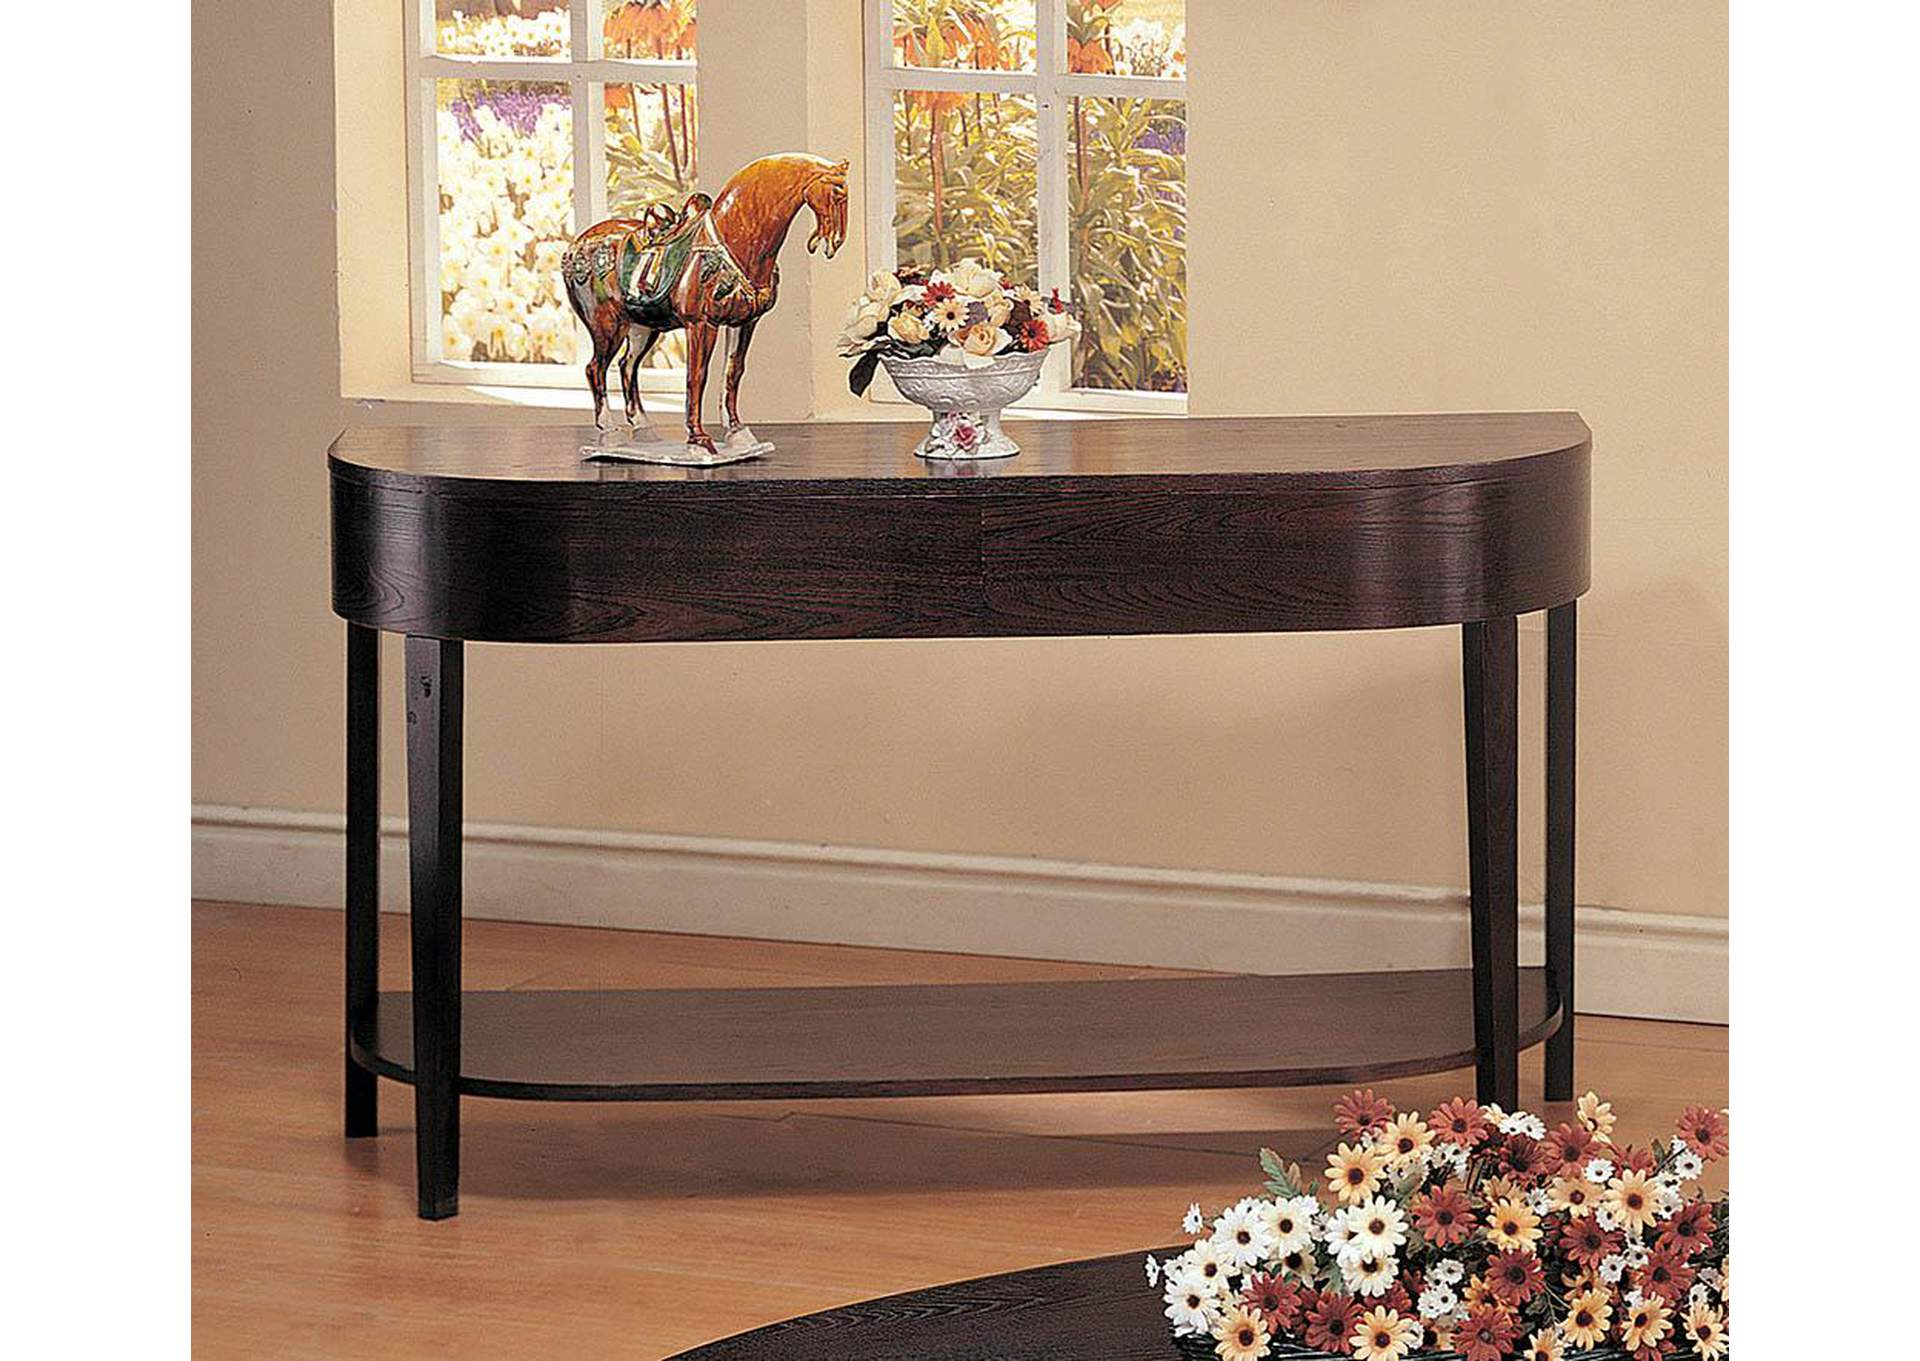 Sofa Table,ABF Coaster Furniture